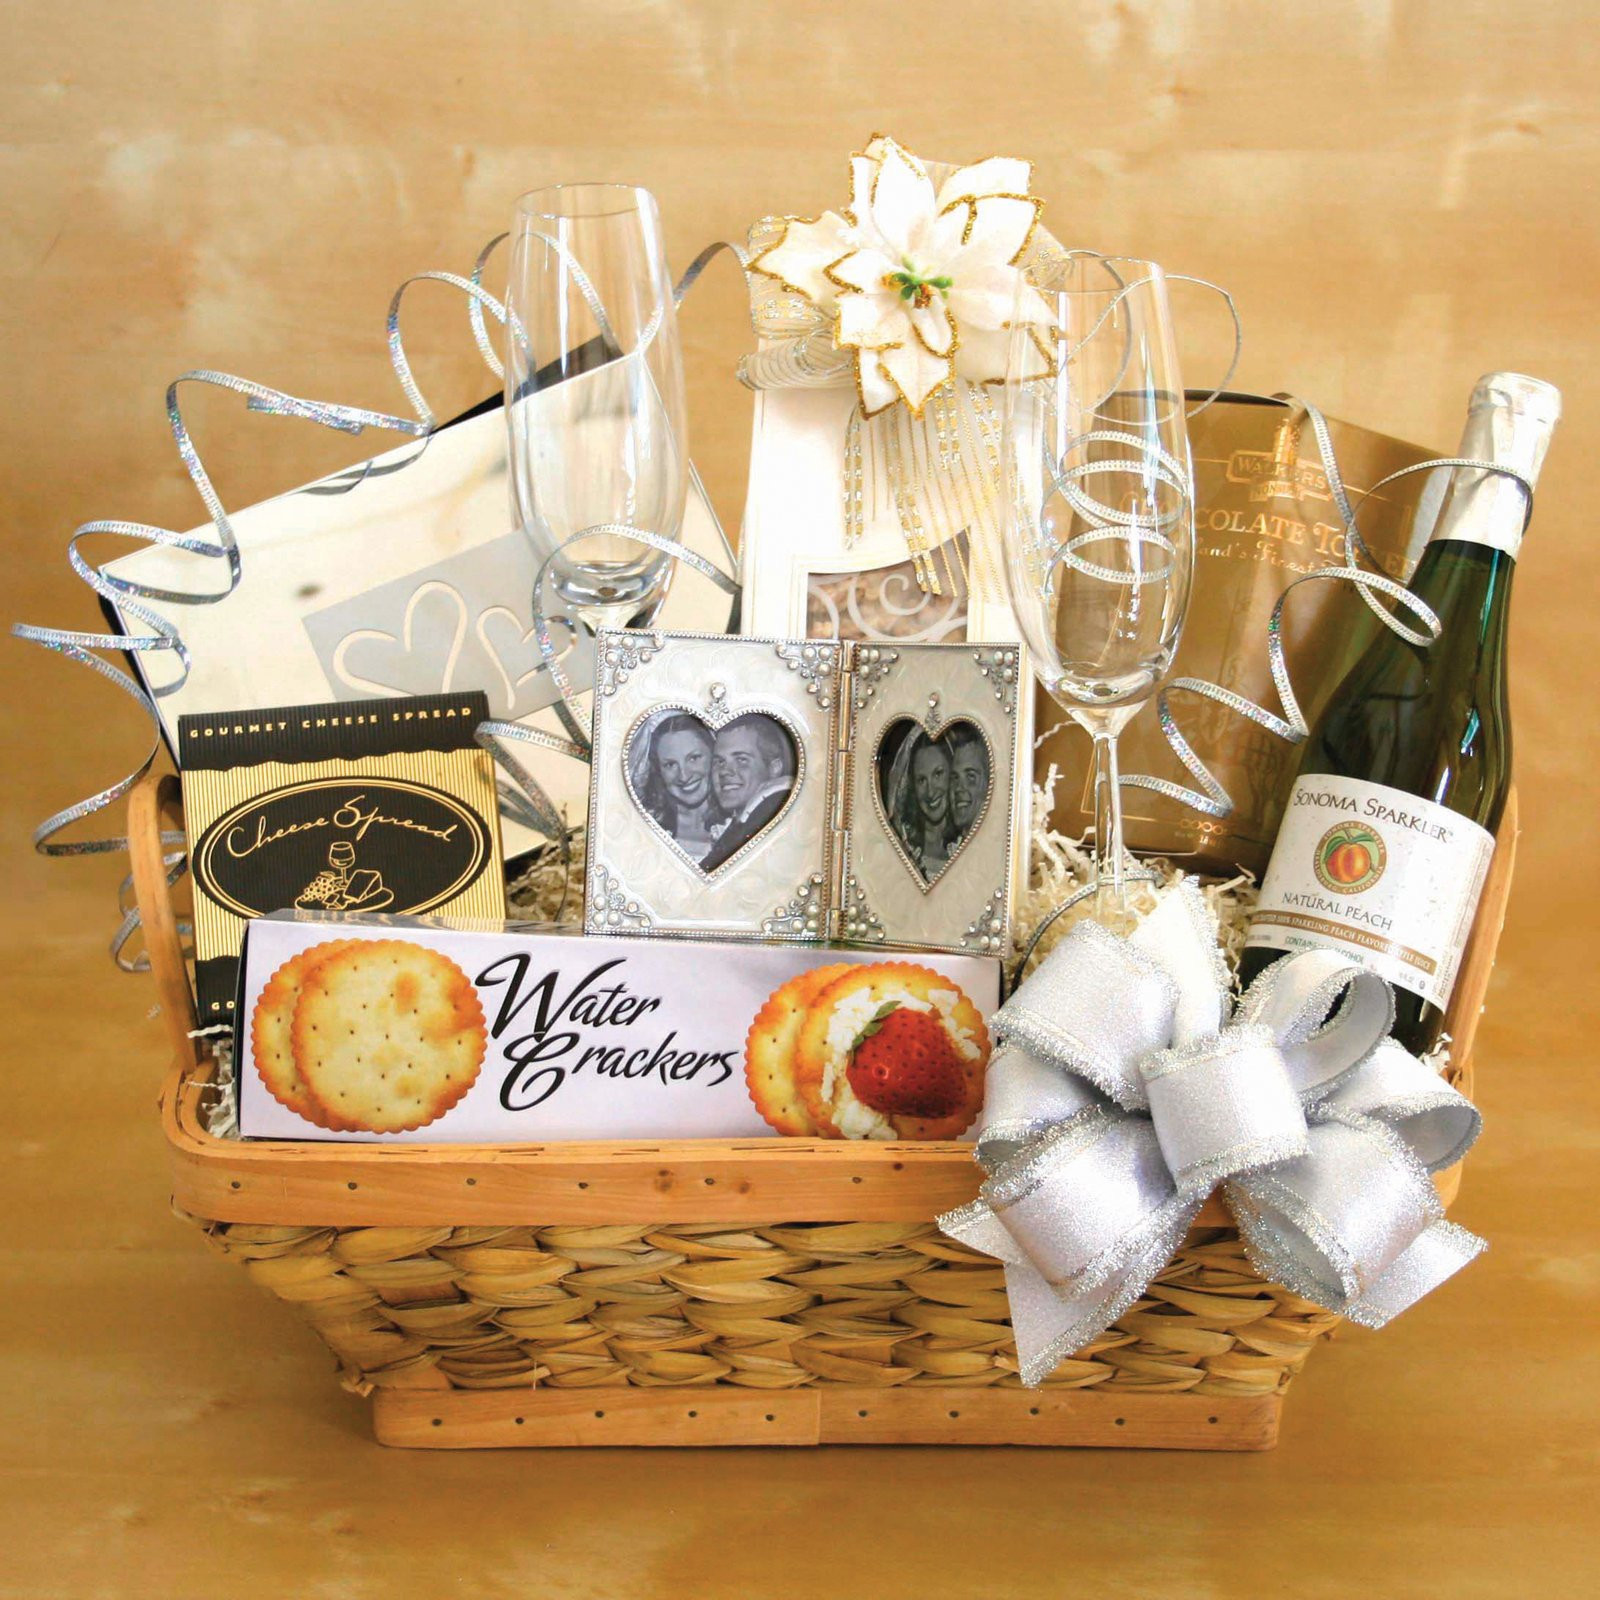 Best ideas about Wedding Gift Basket Ideas . Save or Pin Simple Wedding Gifts Now.